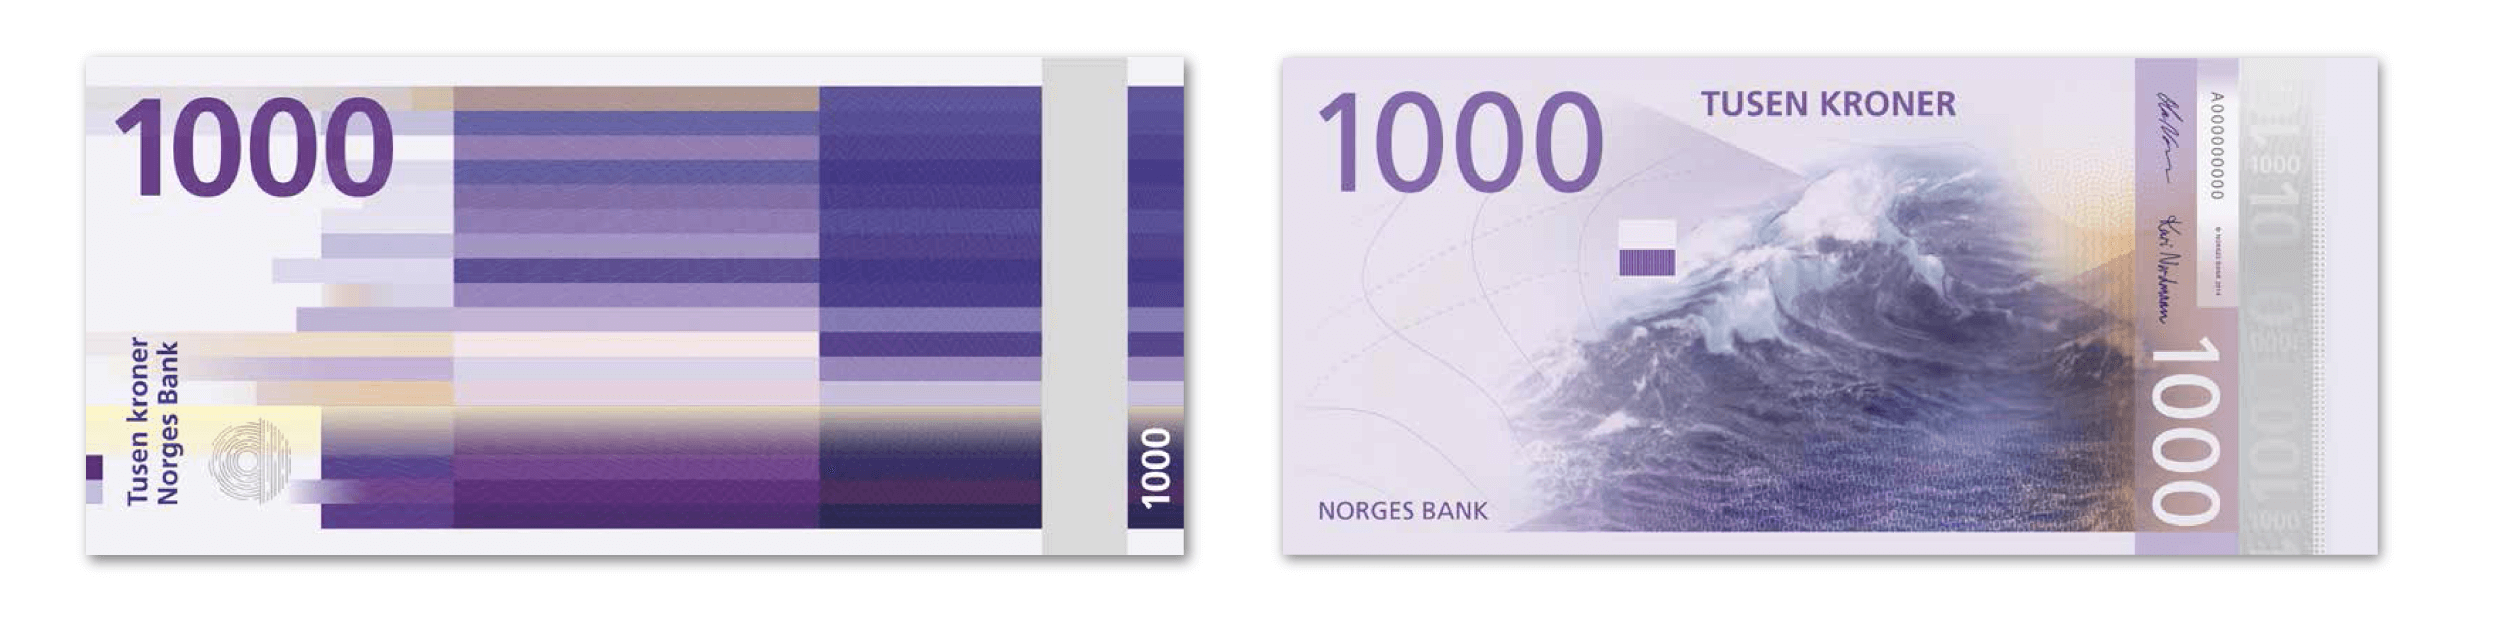 New Currency Norway Norway Currency Redesign_1000